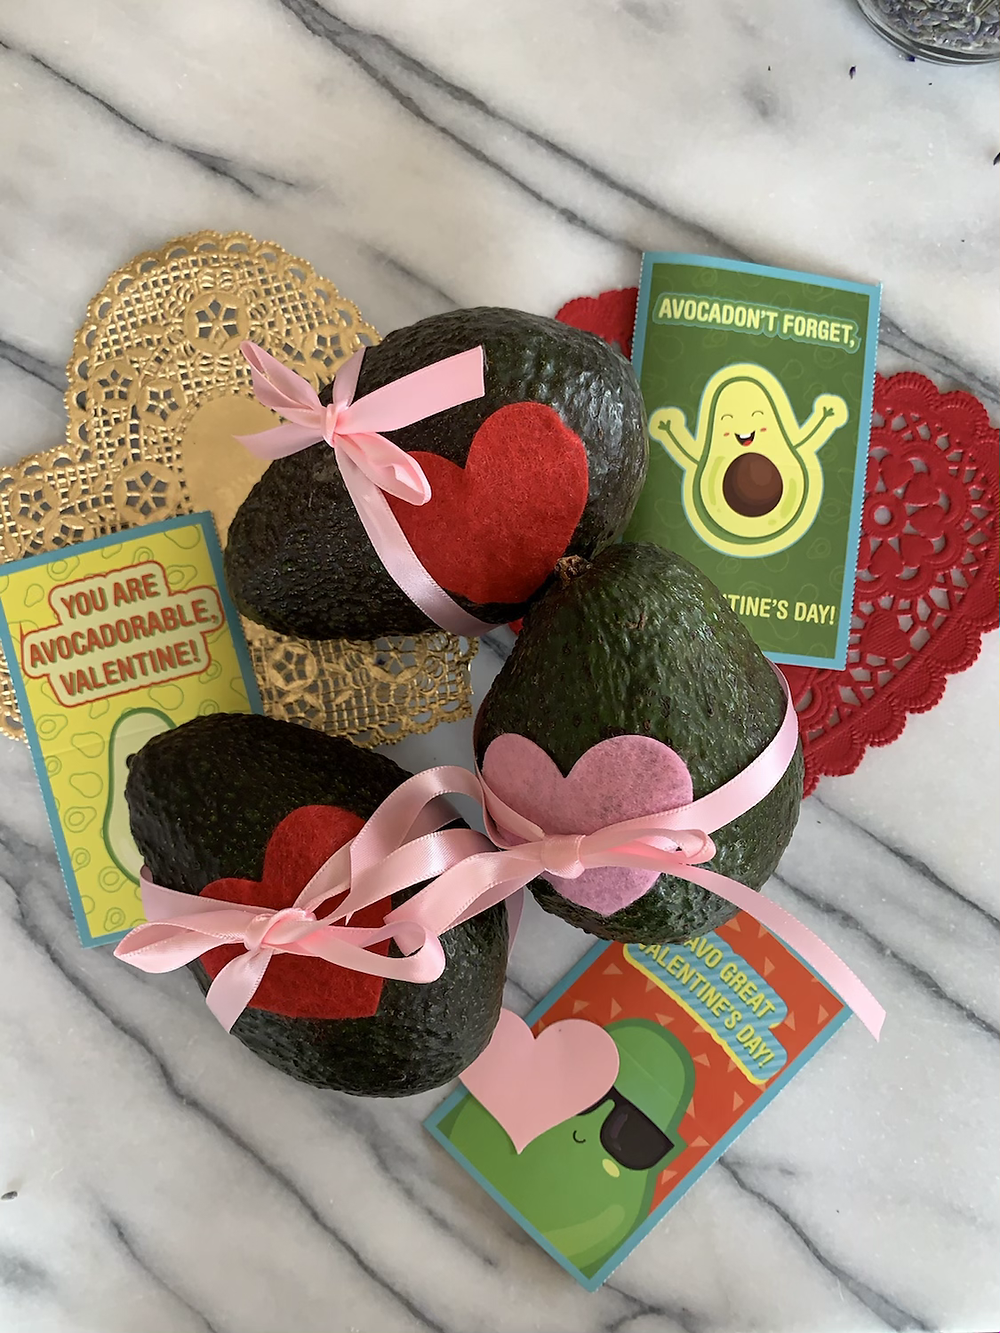 Avocados decorated for valentine's day